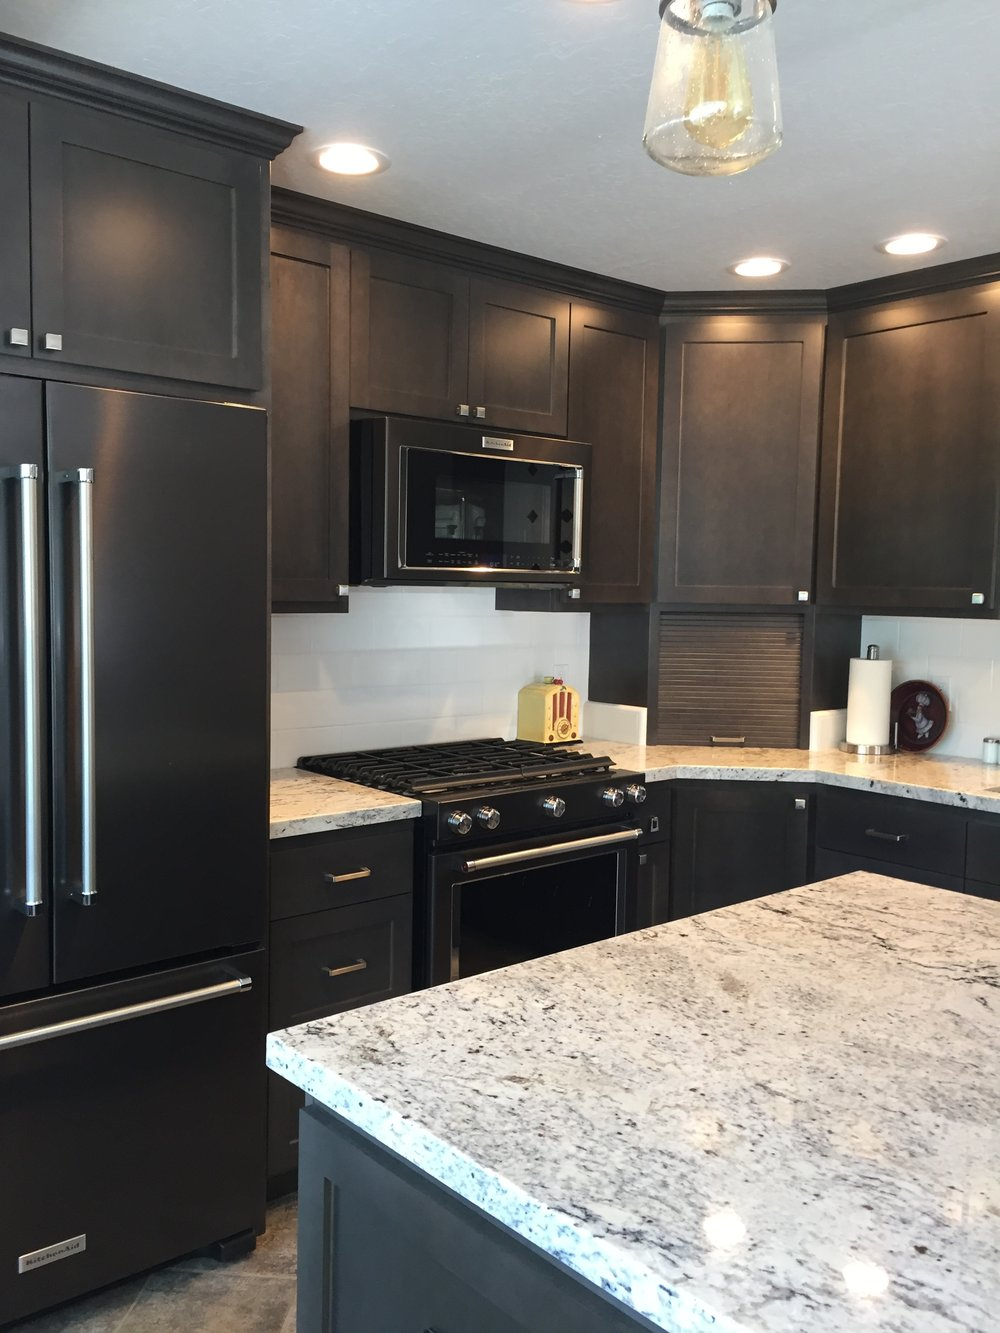 castlewood cabinets